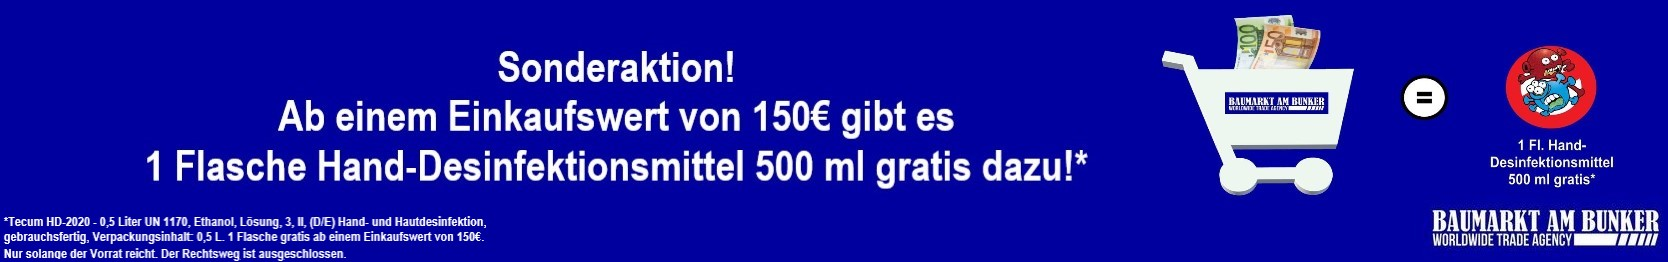 Sonderaktion 150€ HD Shop